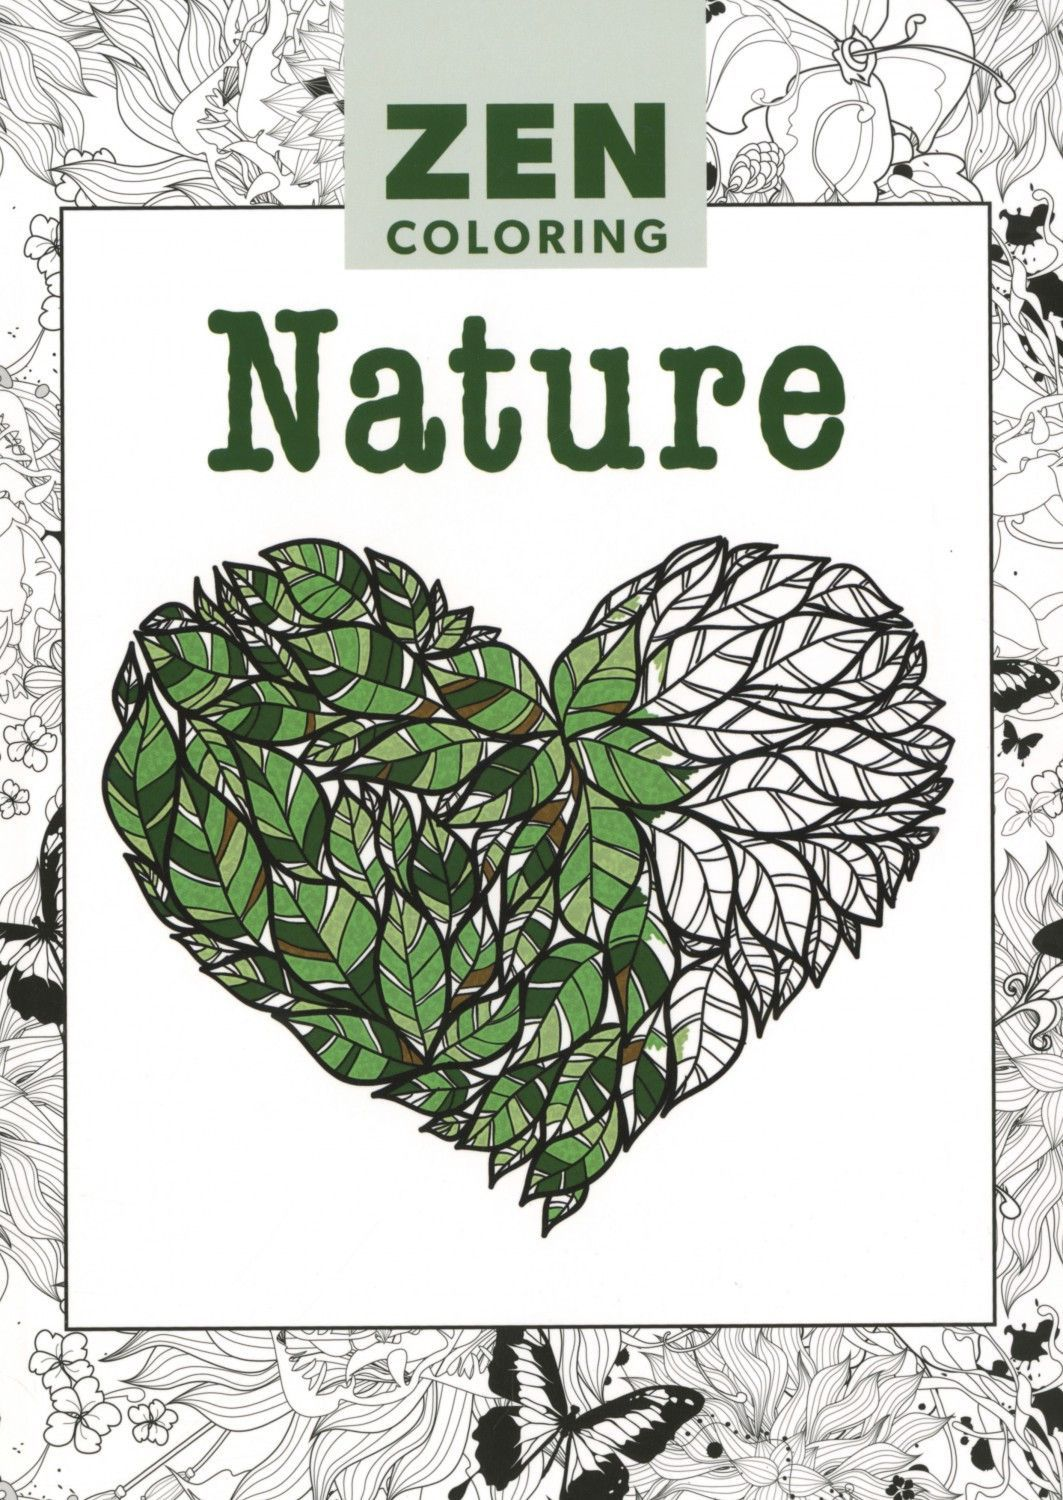 Zen Coloring Nature Adult Coloring Book | Coloring for Adults ...